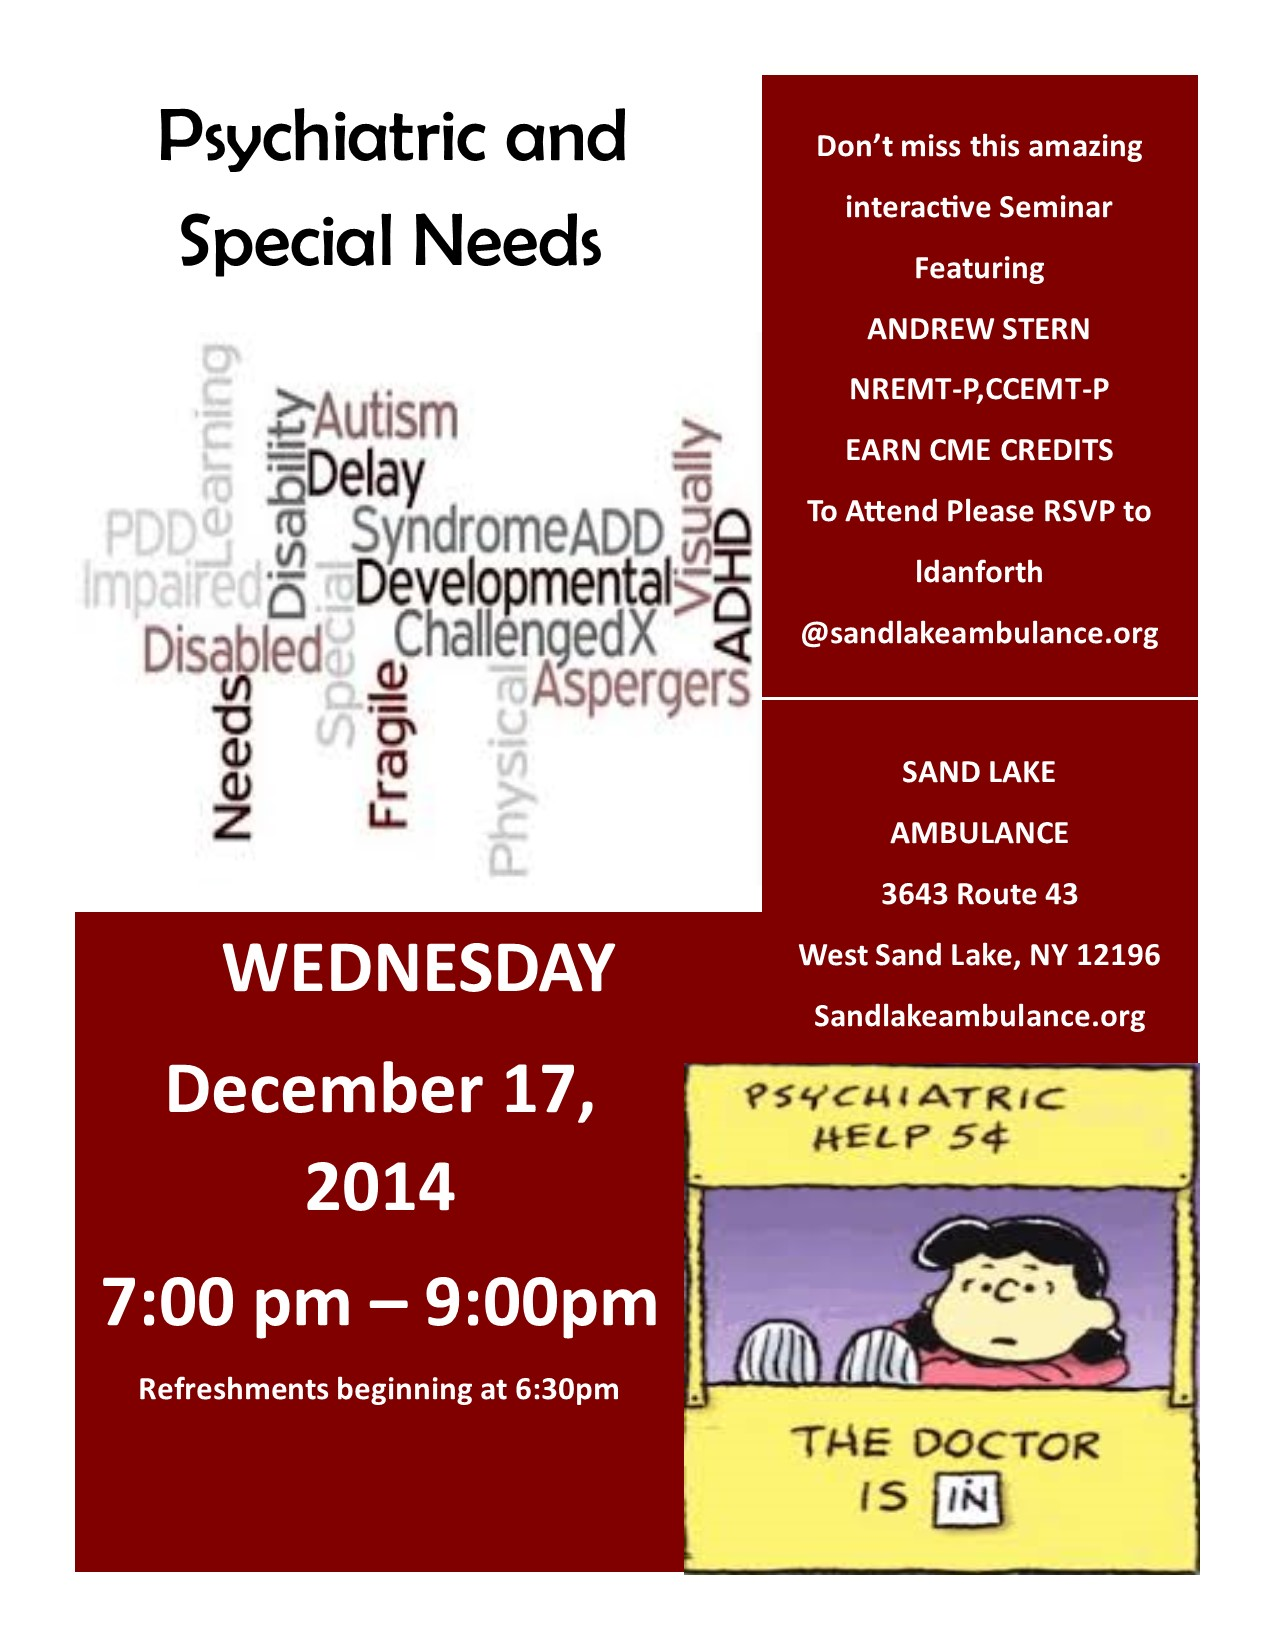 Psychiatric Special Needs December CME 2014